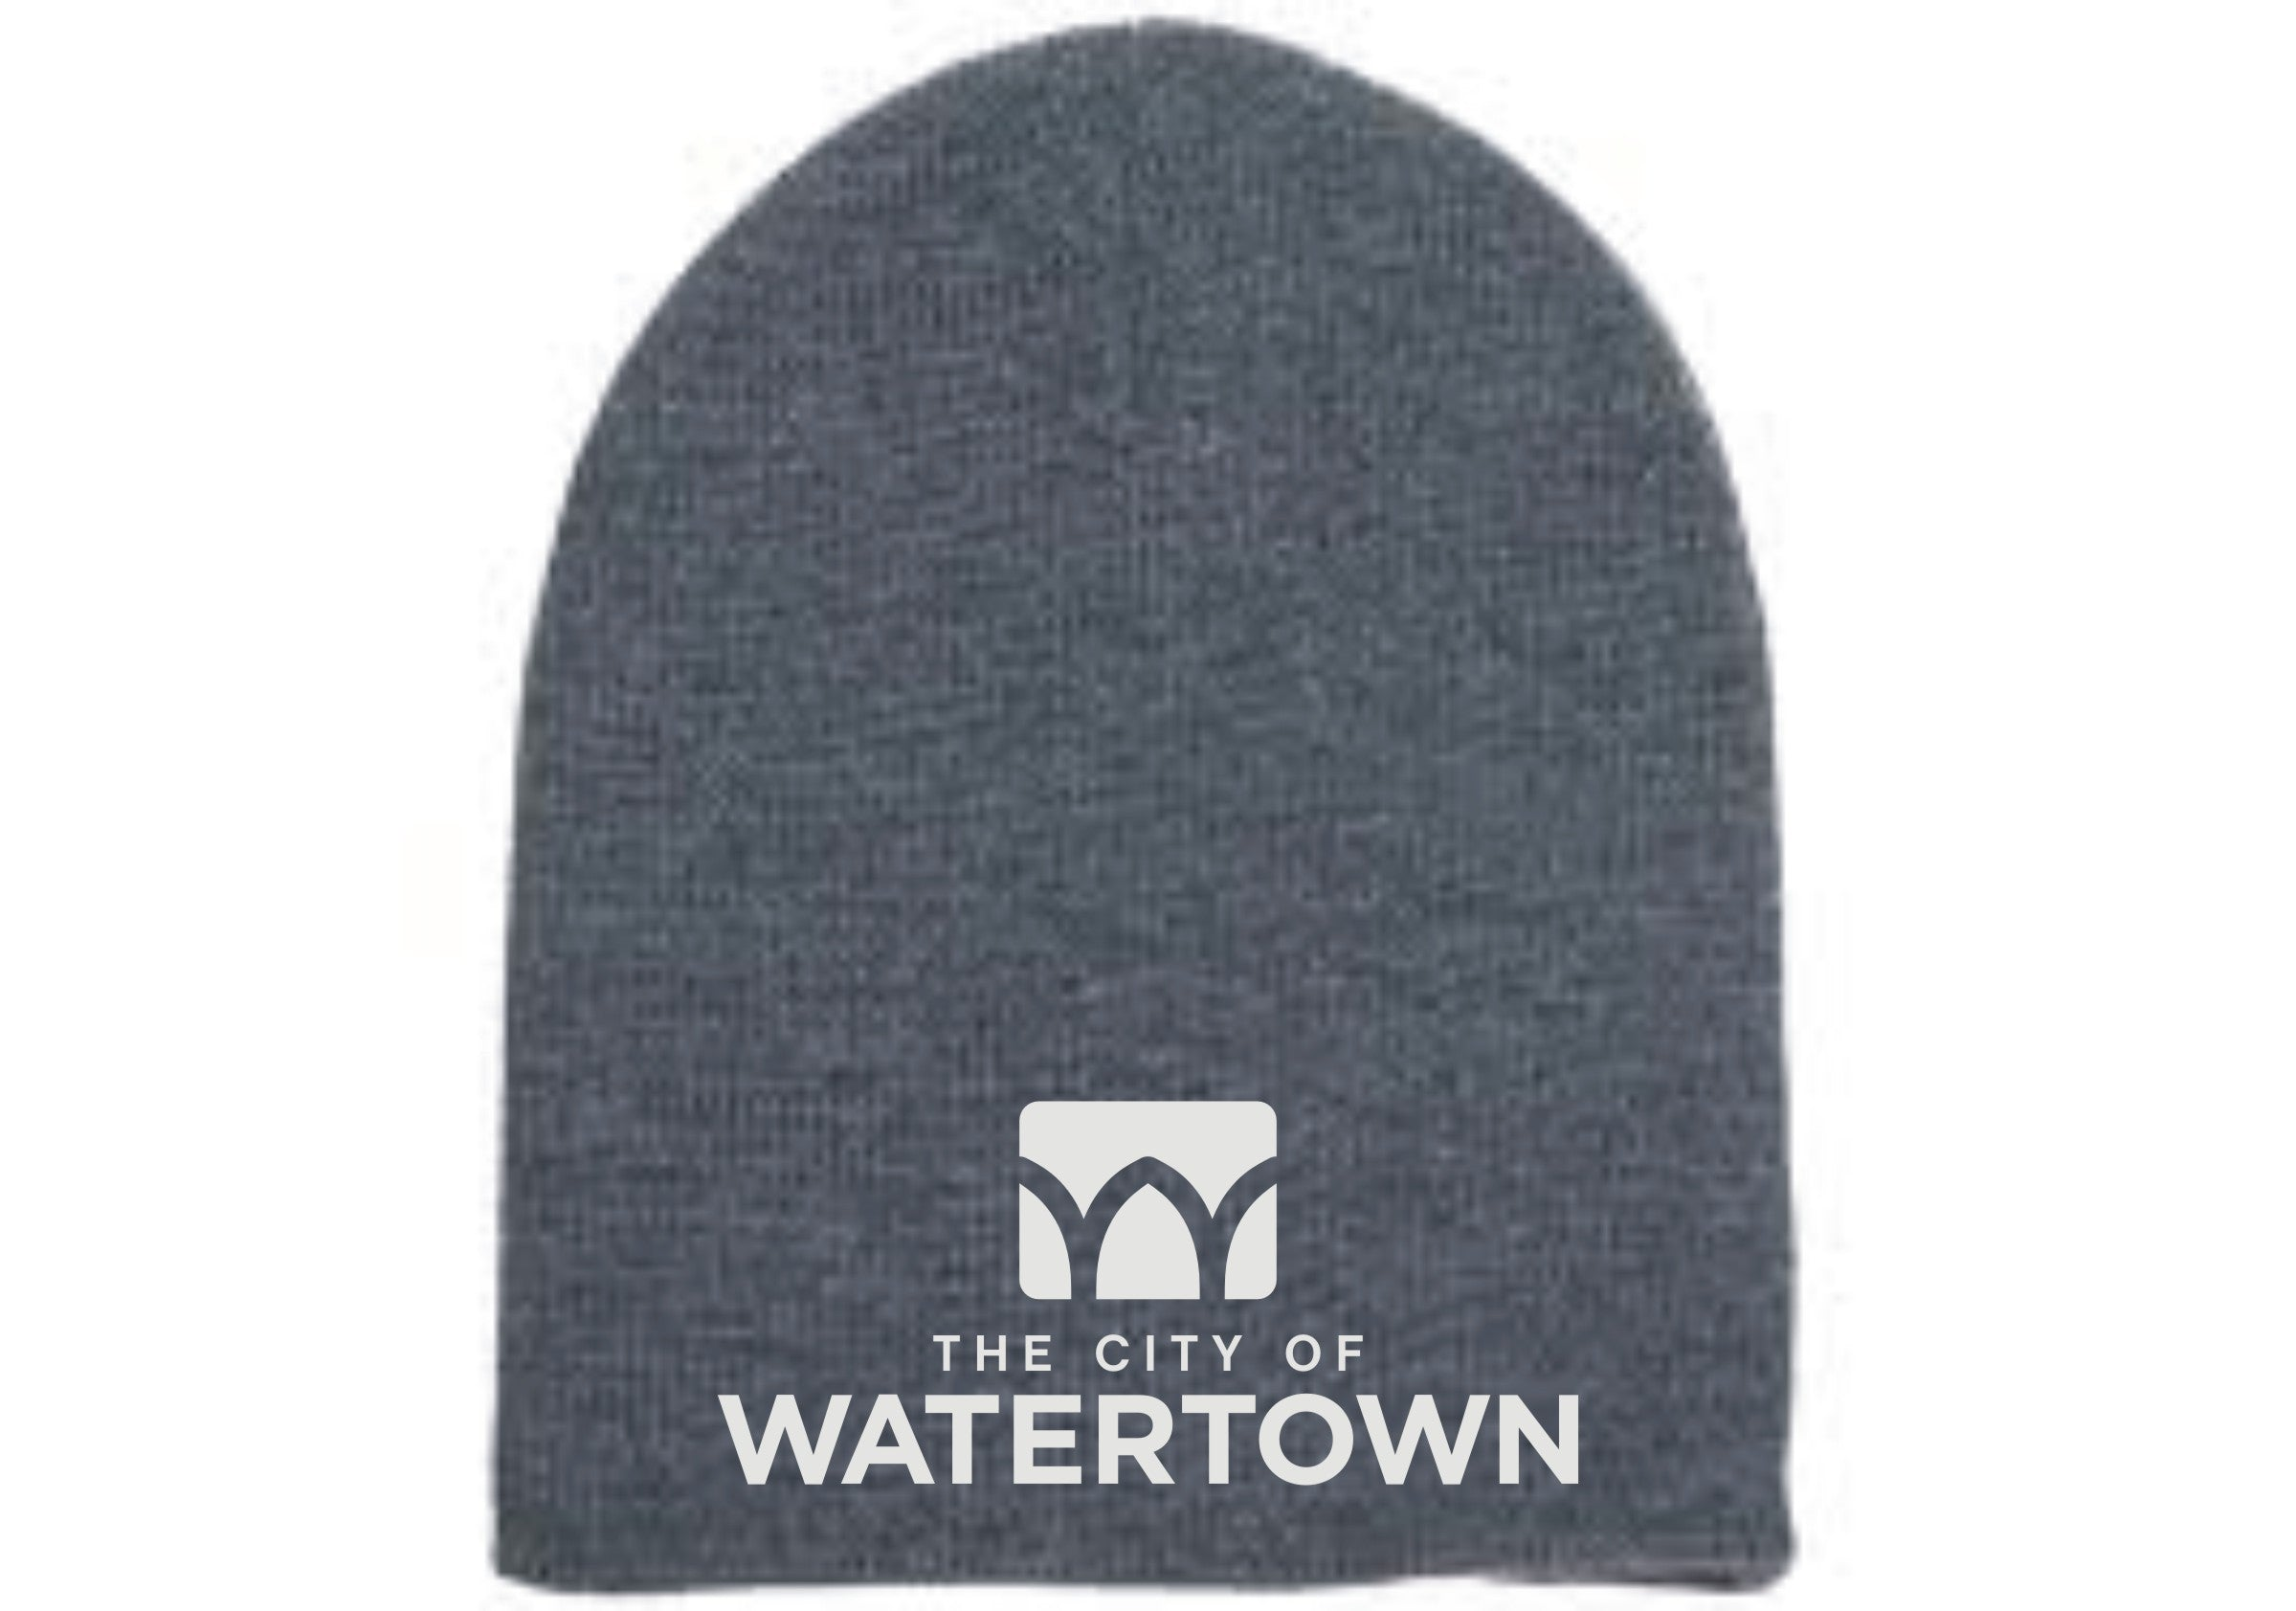 City of Watertown Knit Beanie